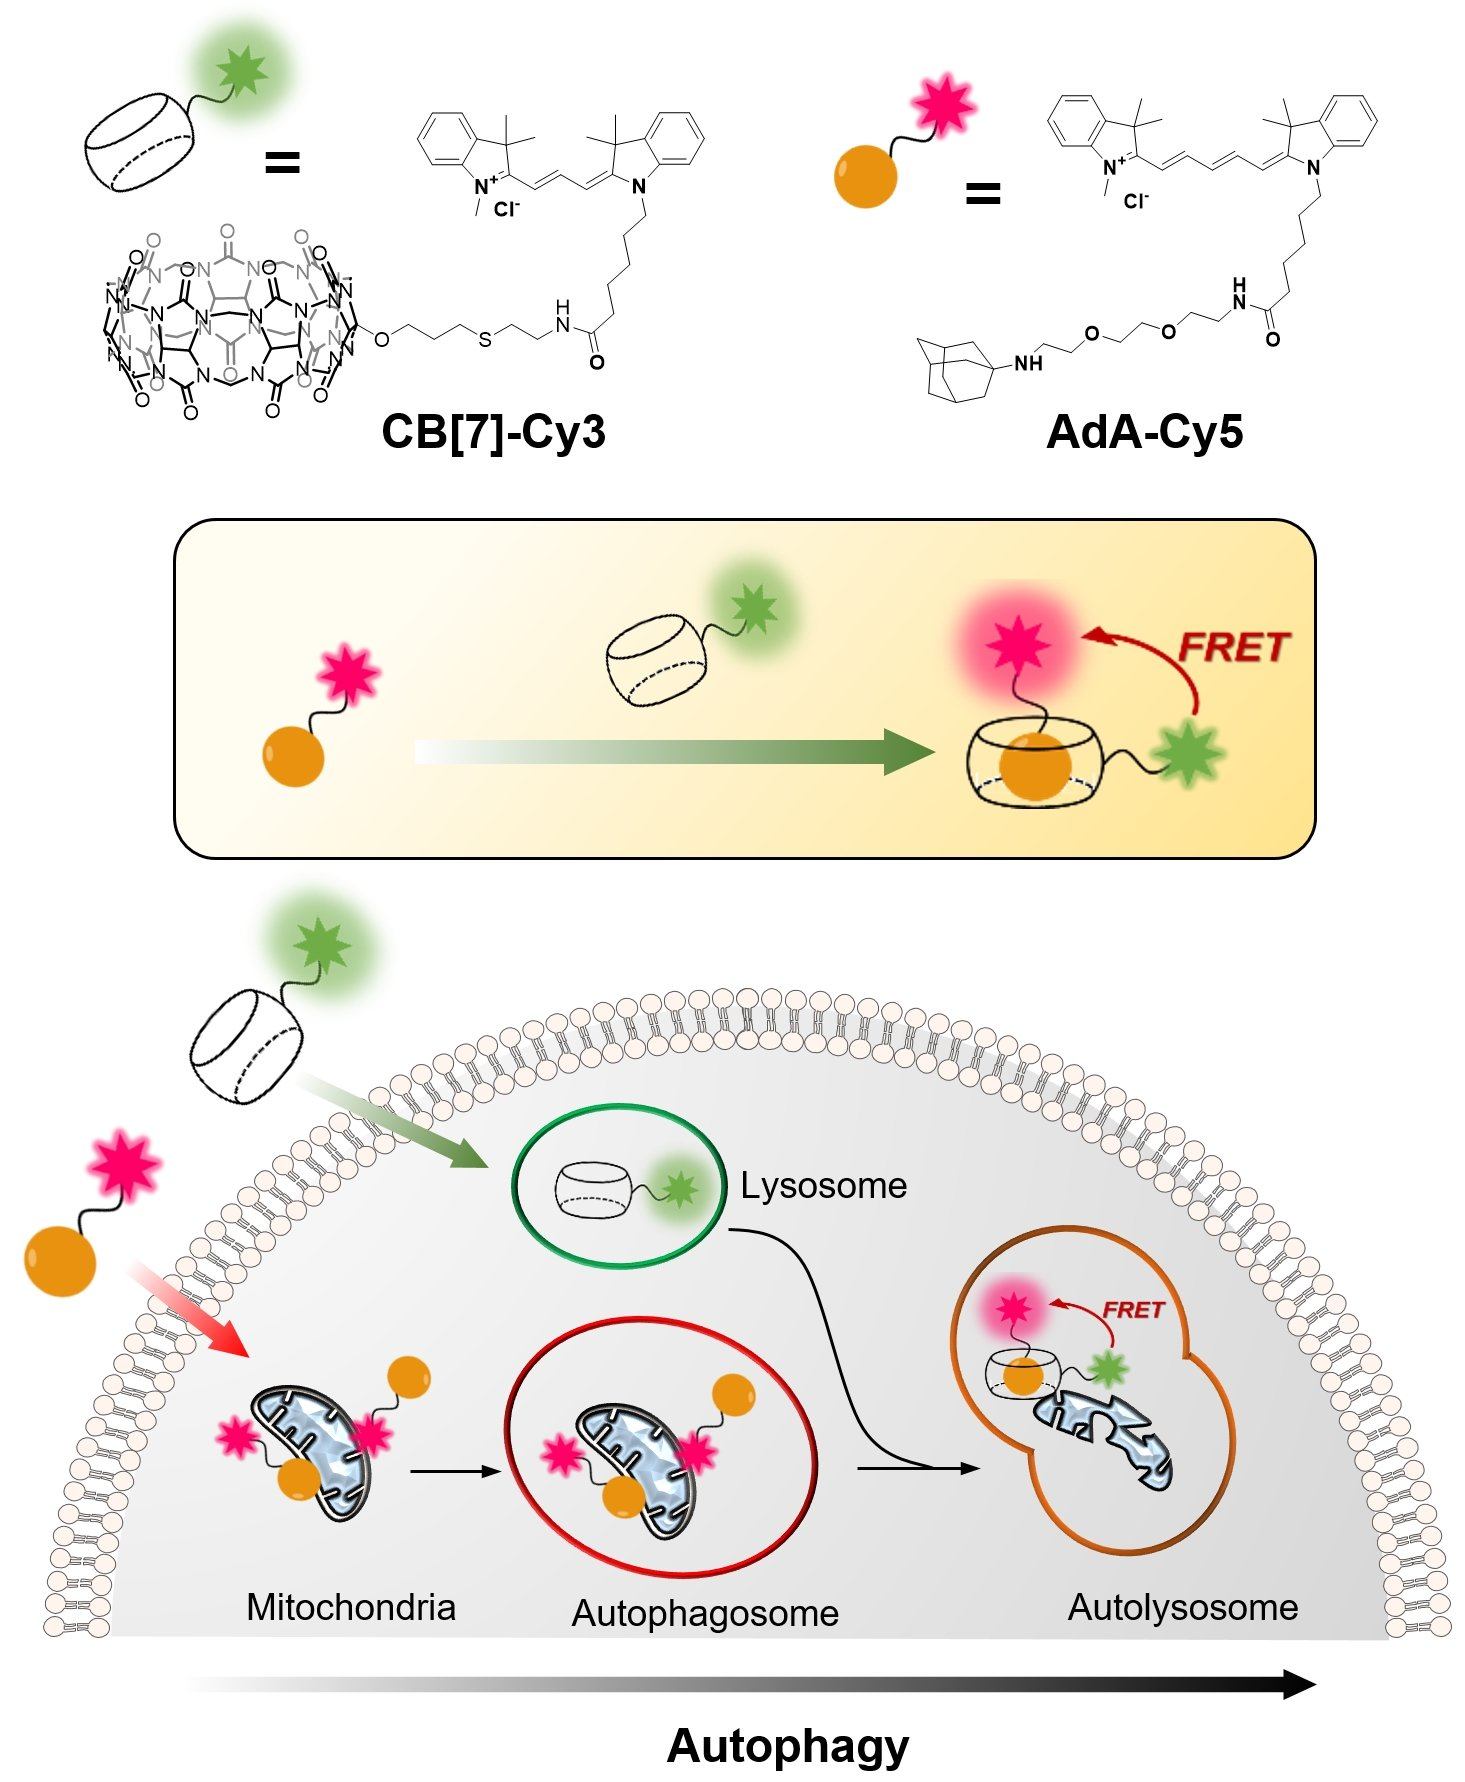 Impaired Recycling Of Mitochondria In >> Cellular Recycling Caught In The Act